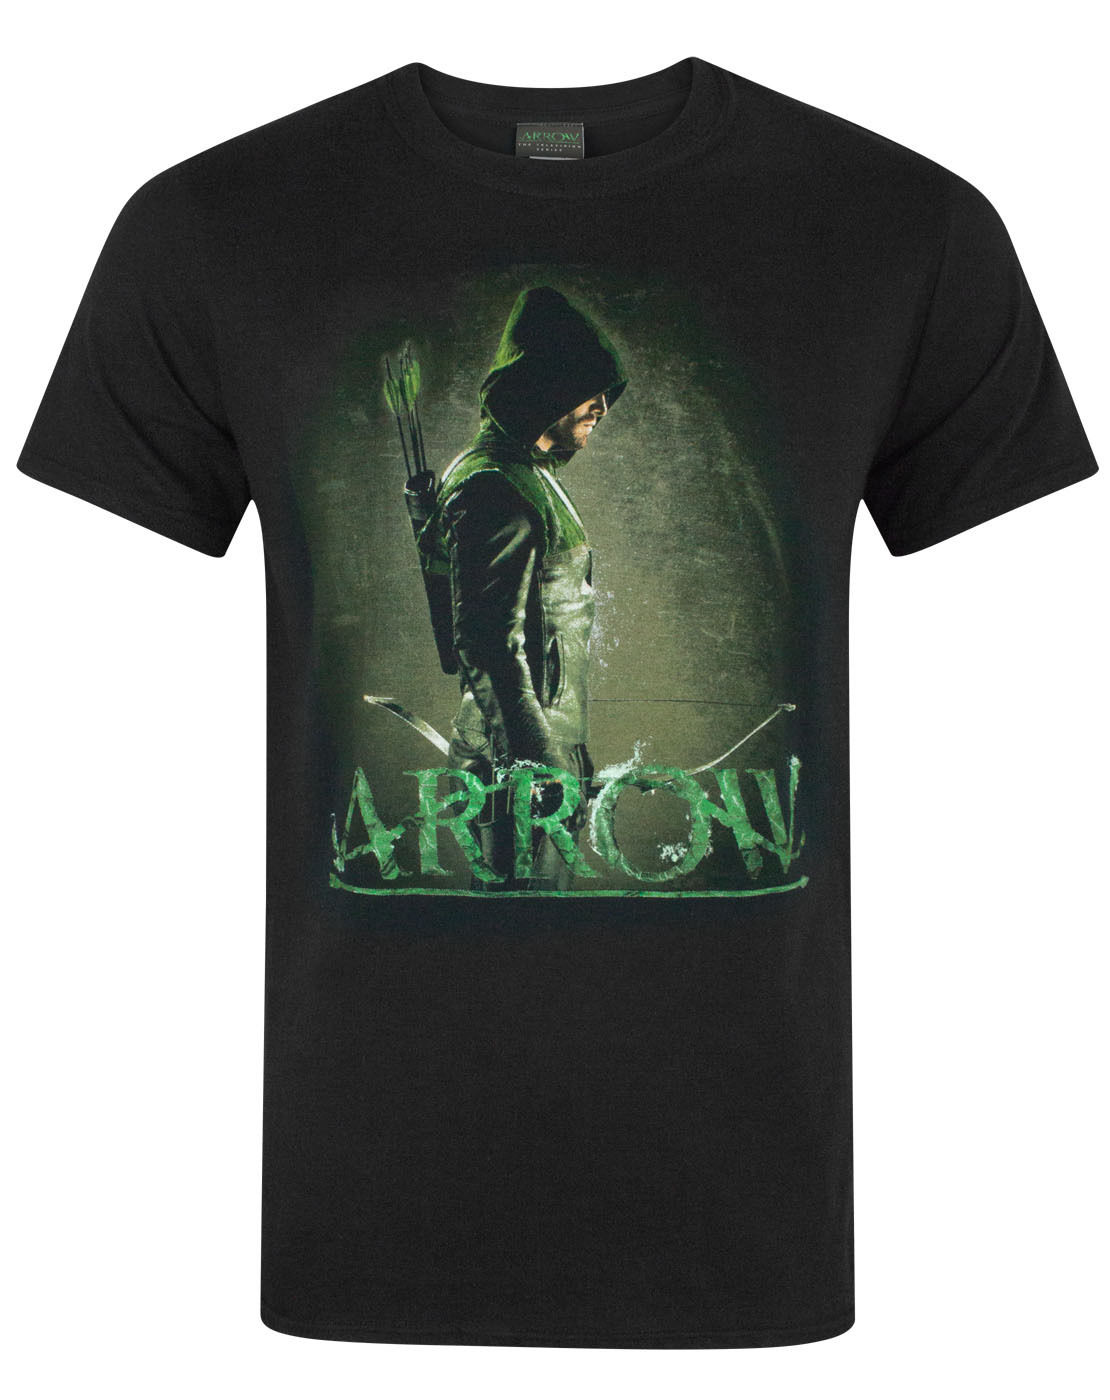 Arrow Men'S T Shirt Cotton T Shirt Fashion Free Shipping Selling Interesting Men T Shirt Men Clothing Plus Size Top Tee